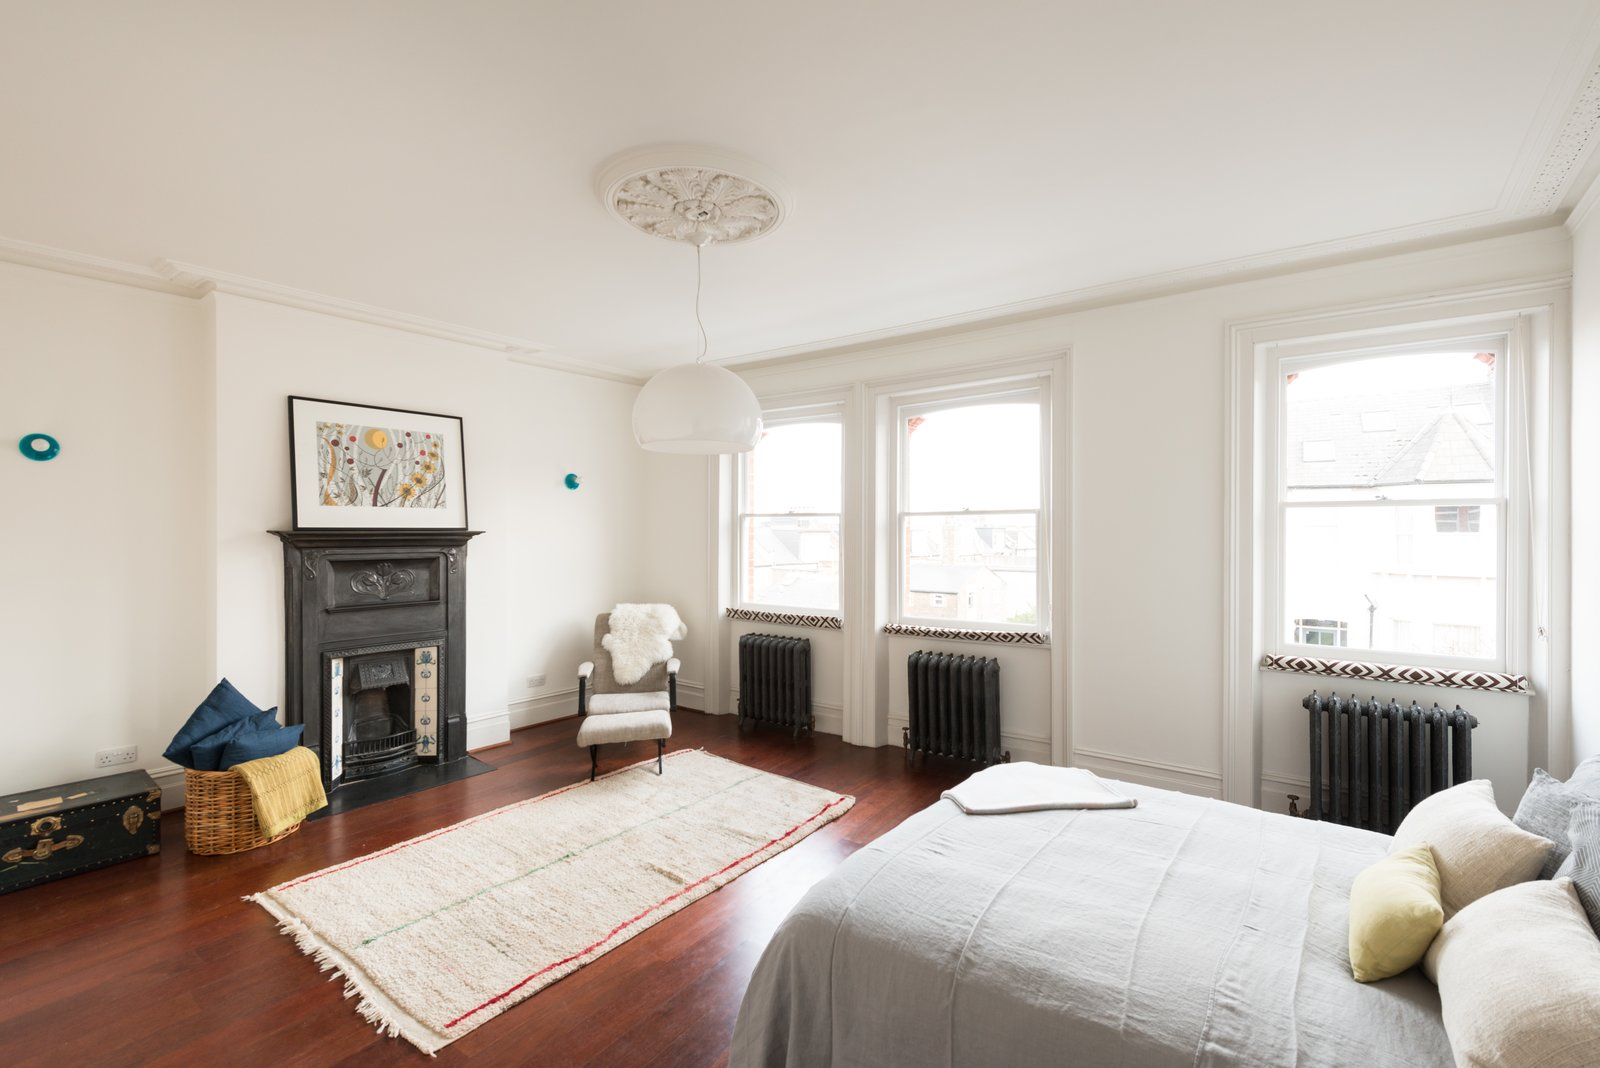 Among the five bedrooms is a master suite in the eaves that has an en-suite bathroom, freestanding bath, and a dressing area complete with under-eaves storage.  Photo 8 of 9 in A Fusion of Old and New Makes this Home For Sale Shine on London's Womersley Road